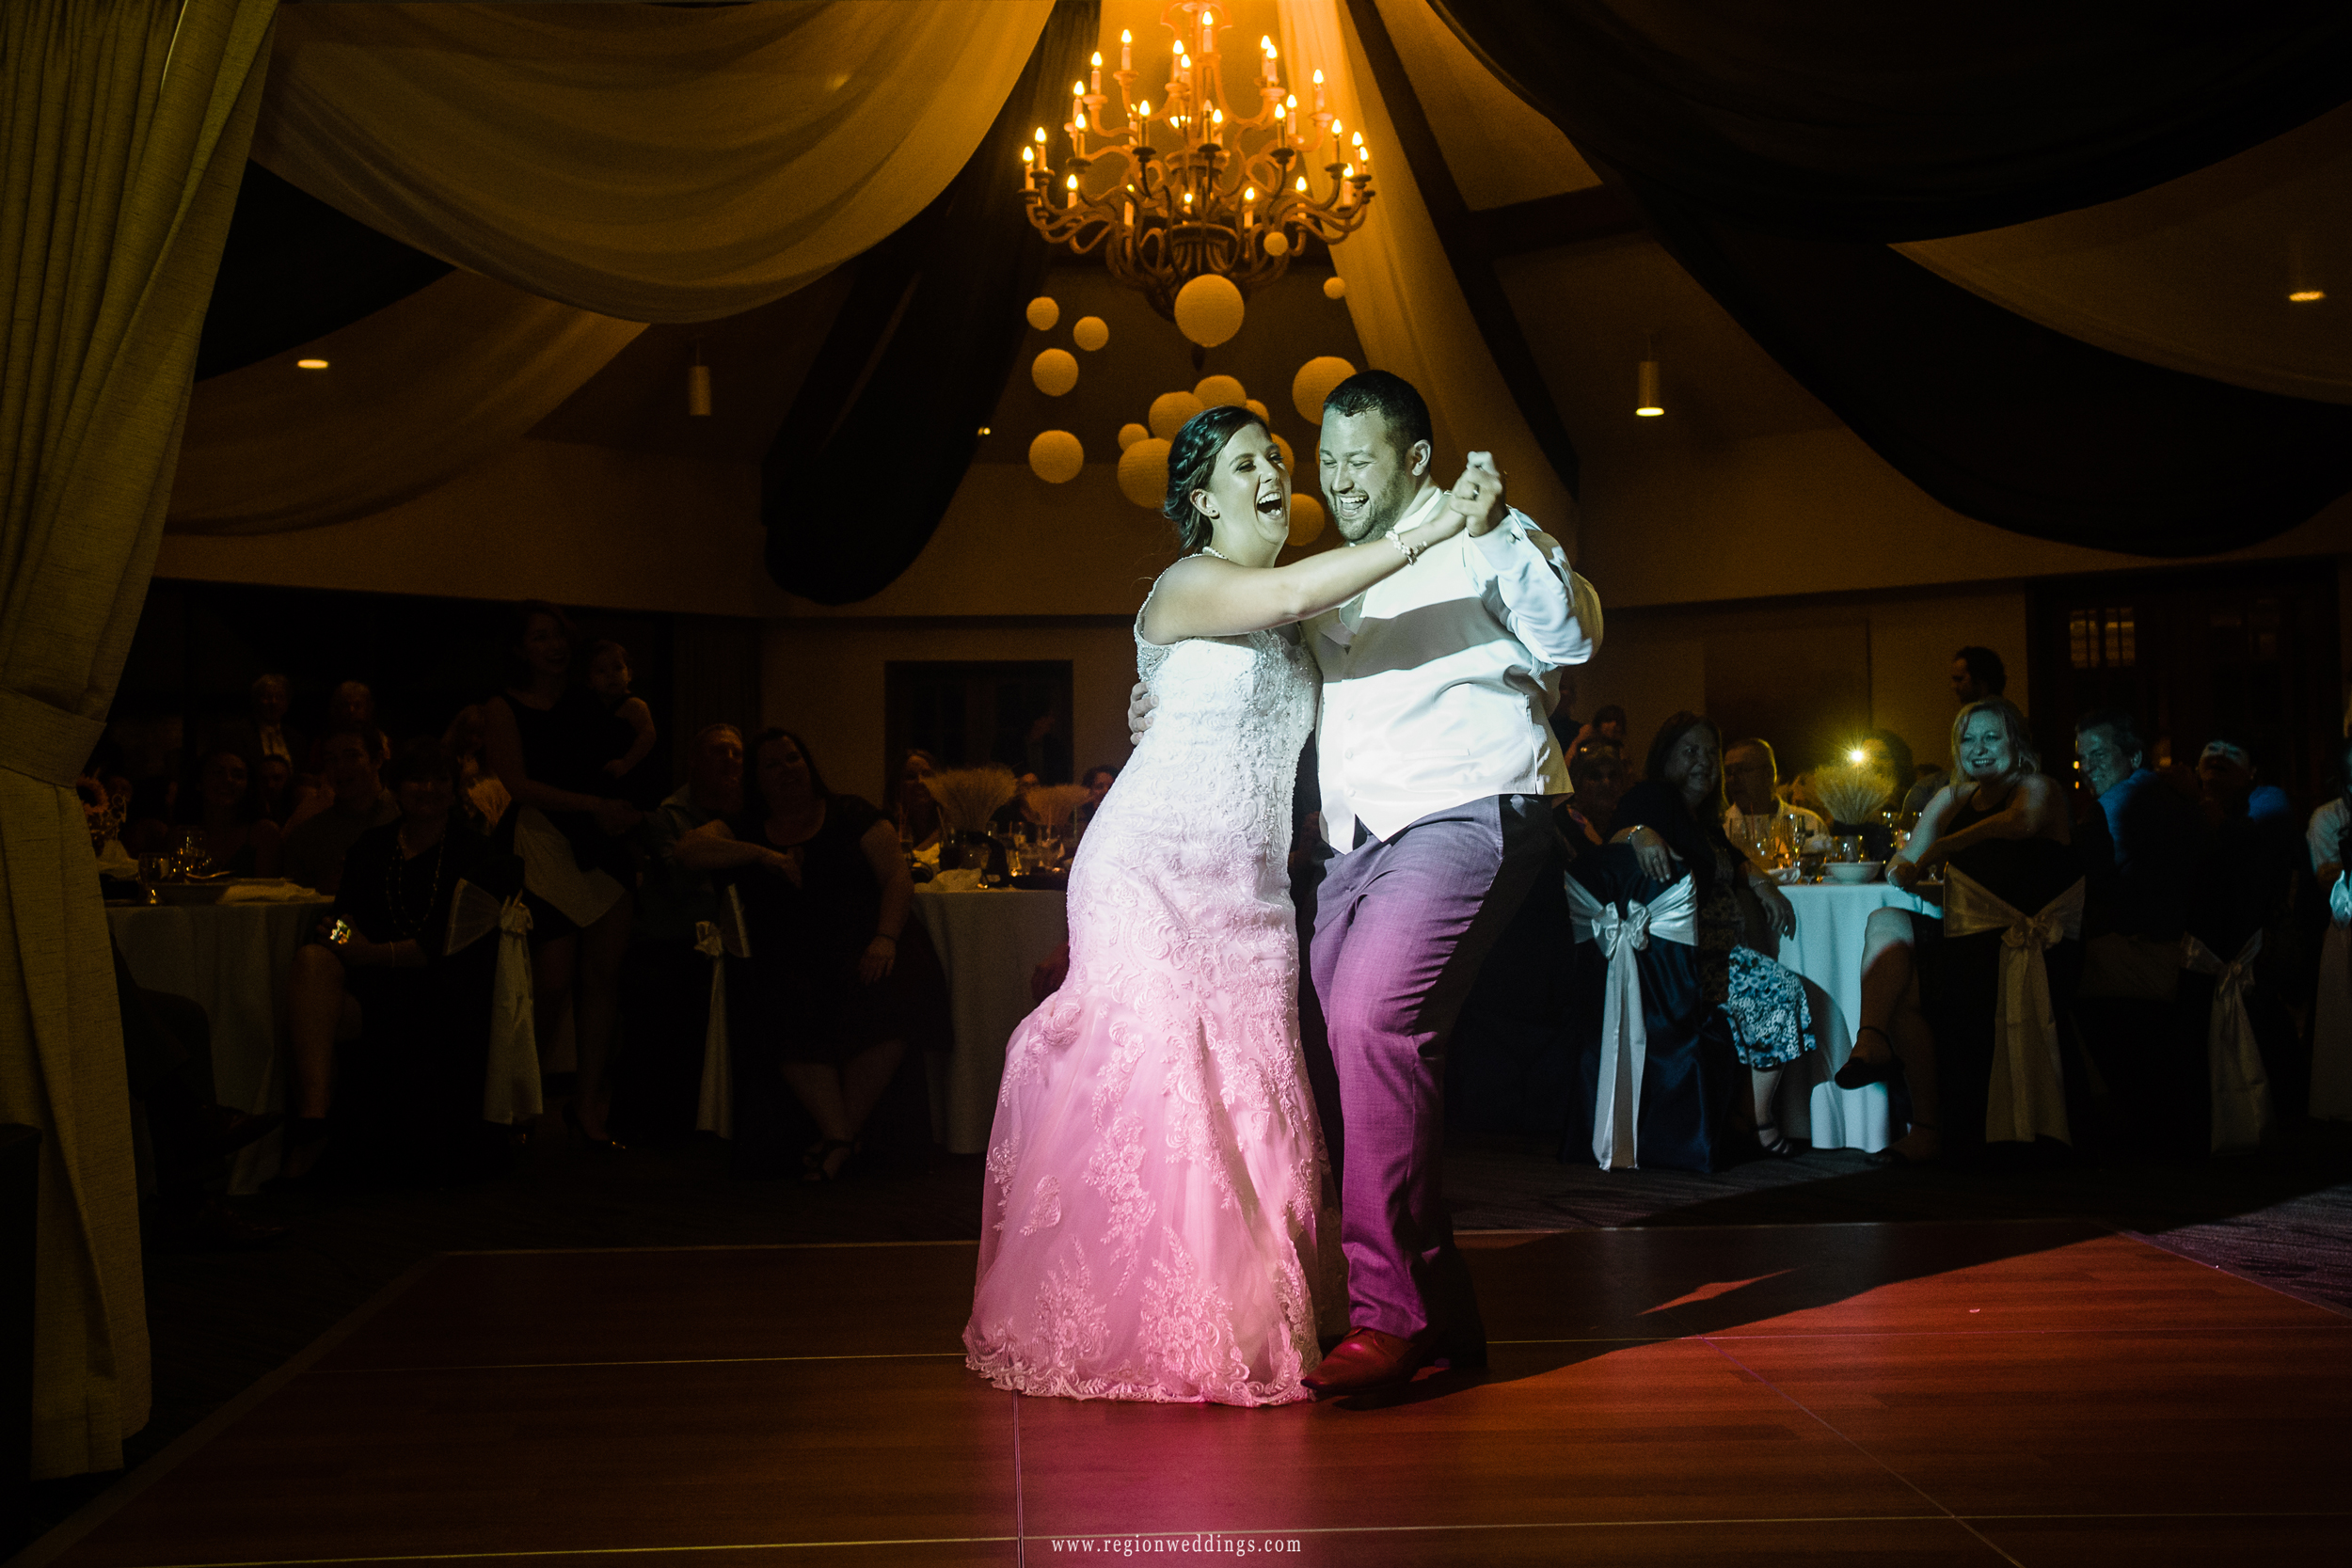 Fun moment on the dance floor for the bride and groom.